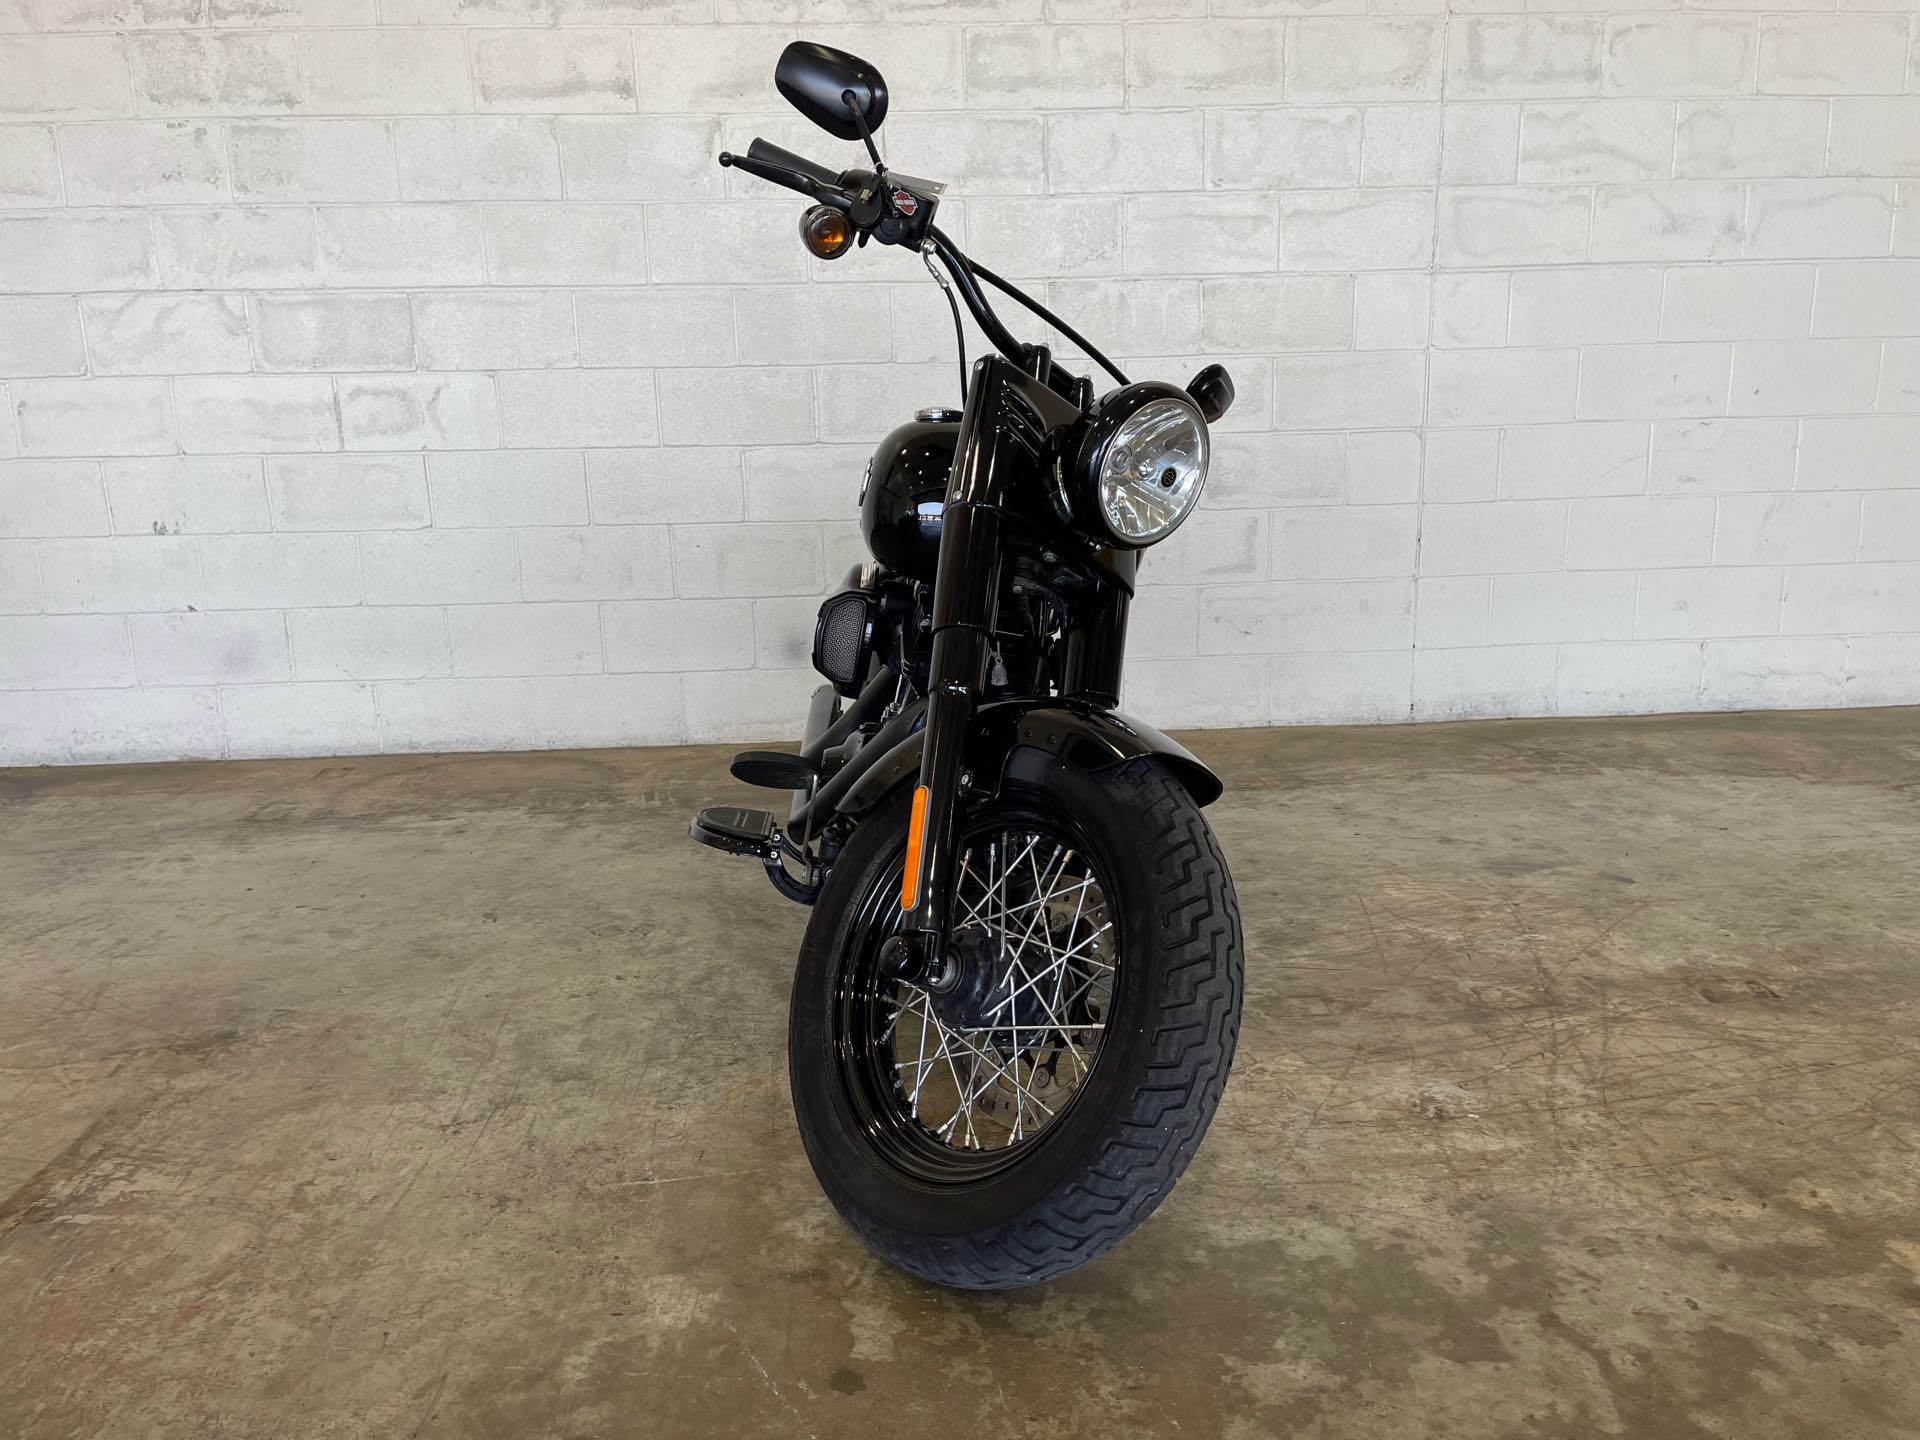 2017 Harley-Davidson Softail Slim S at Twisted Cycles